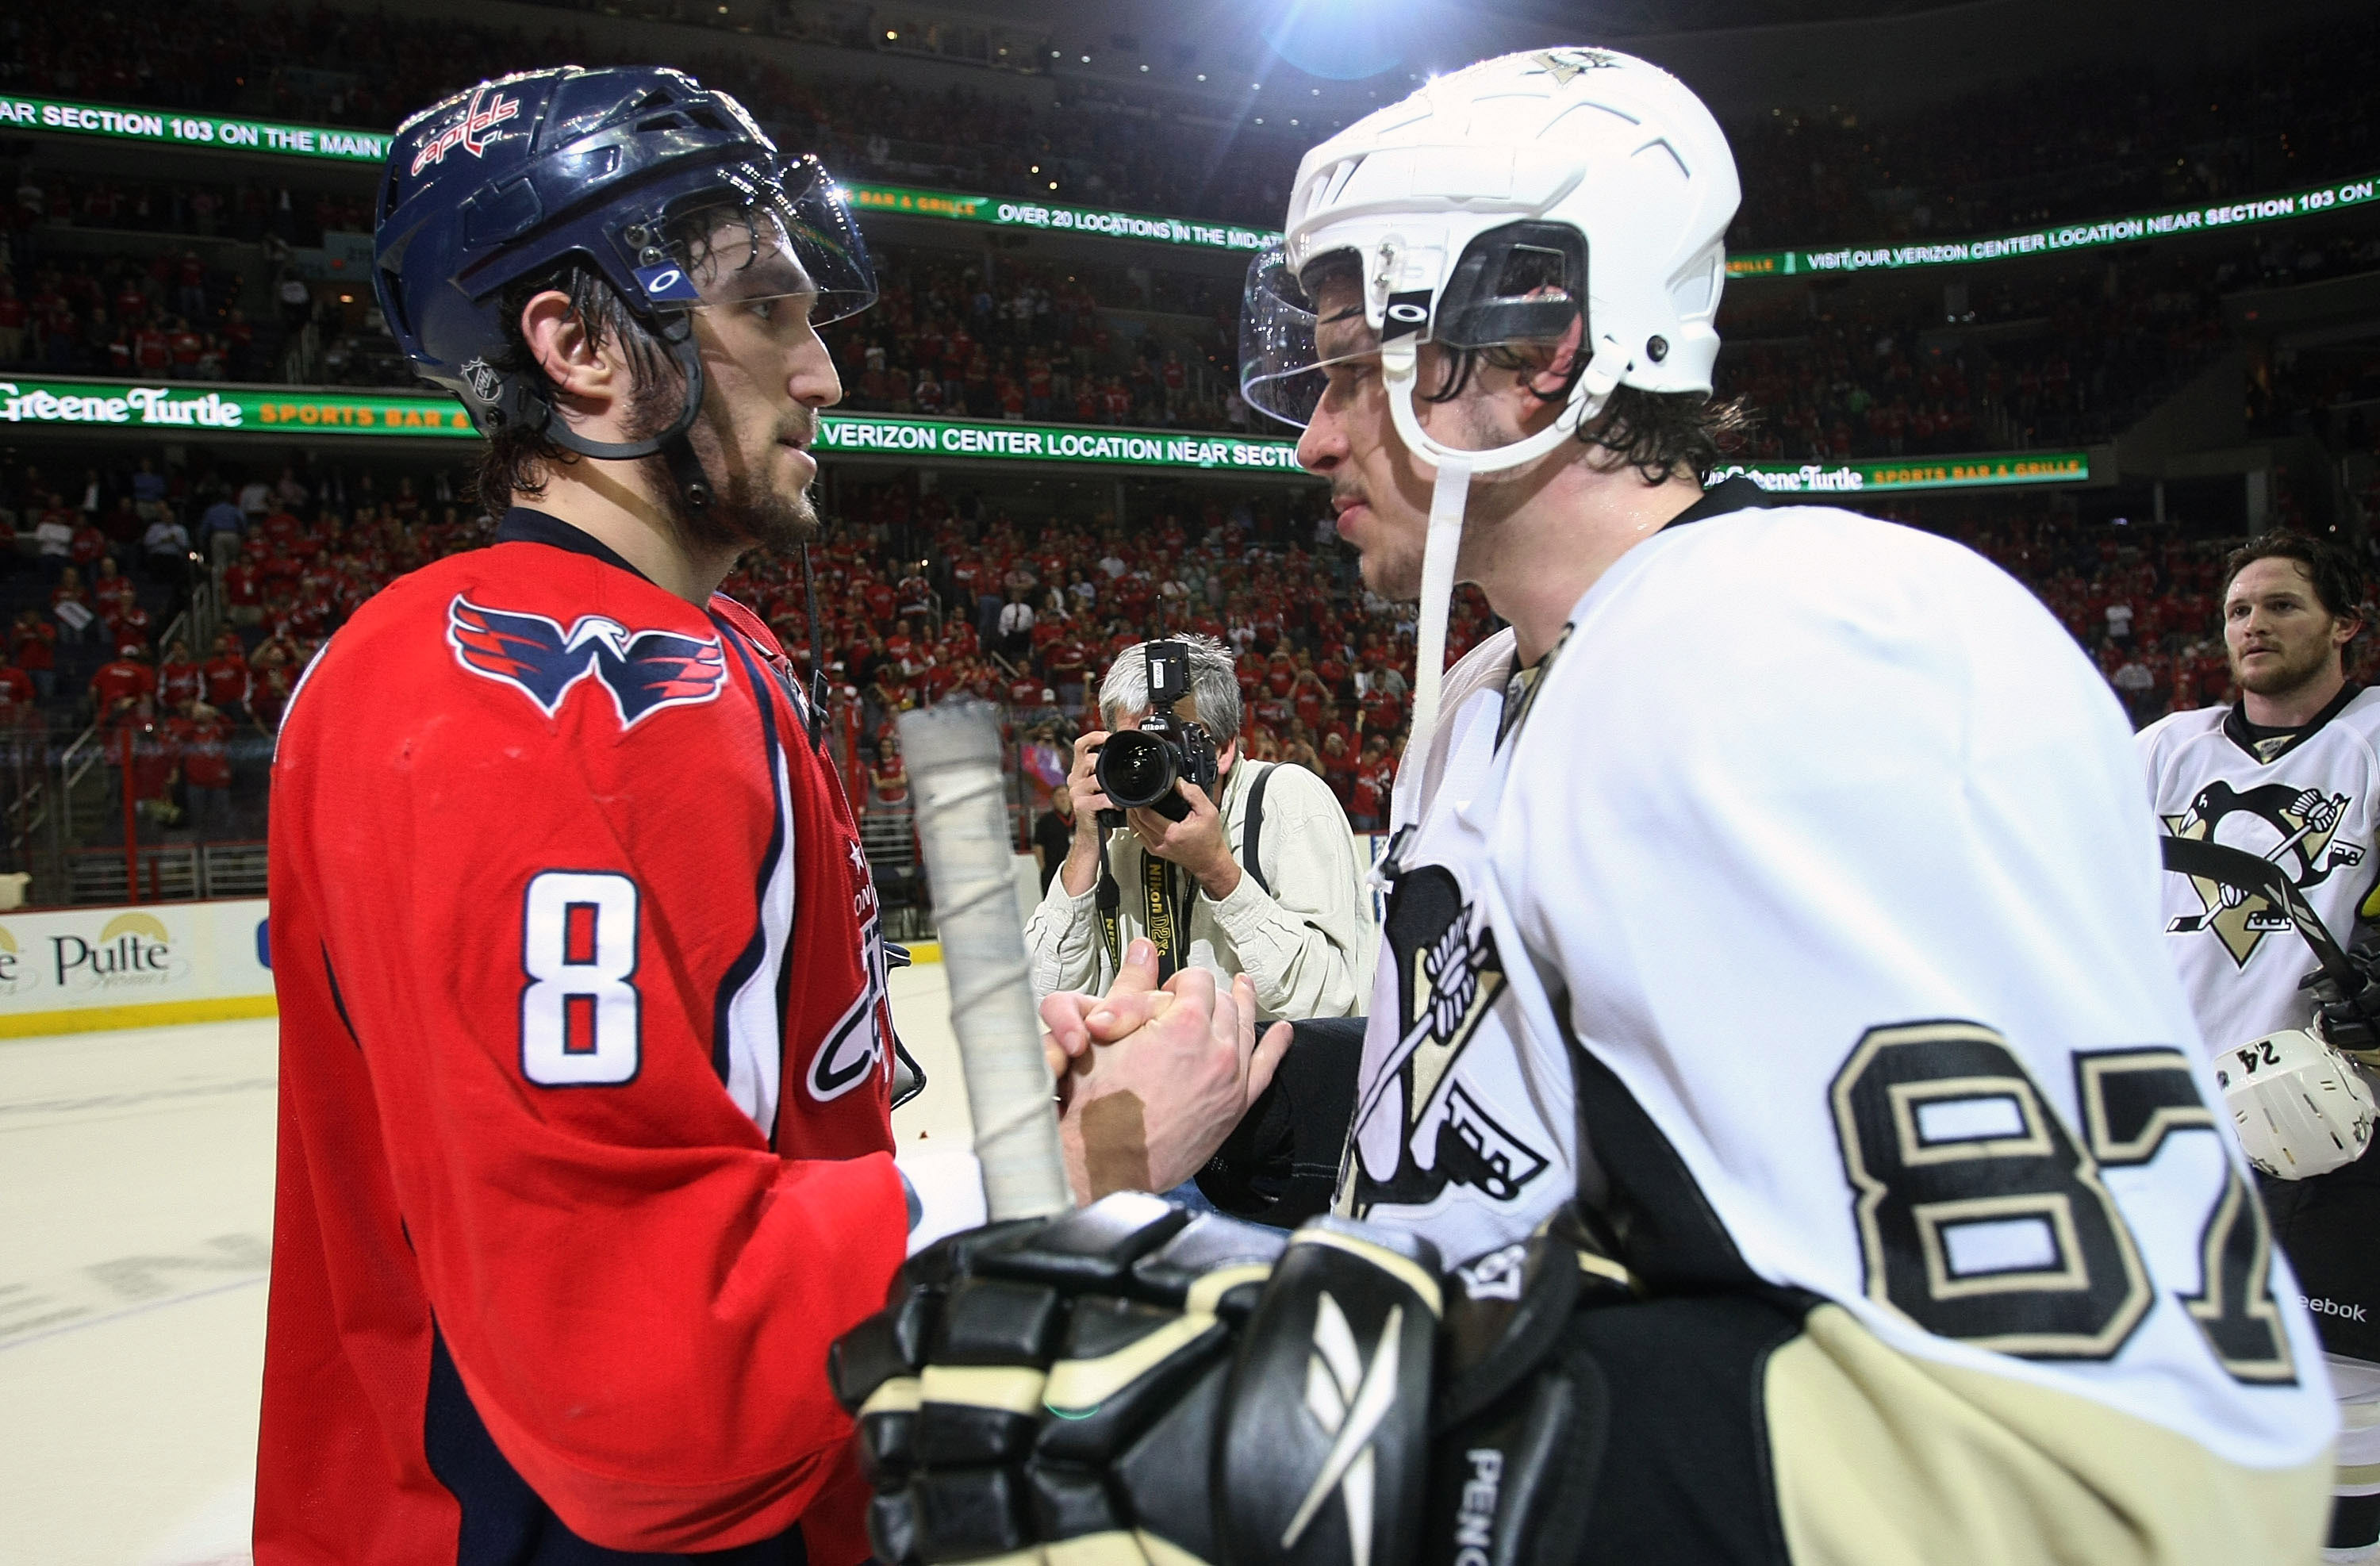 WASHINGTON - MAY 13: Alex Ovechkin #8 of the Washington Capitals and Sidney Crosby #87 of the Pittsburgh Penguins shake hands after Pittsburgh's 6-2 victory in Game Seven of the Eastern Conference Semifinal Round of the 2009 Stanley Cup Playoffs at Verizo